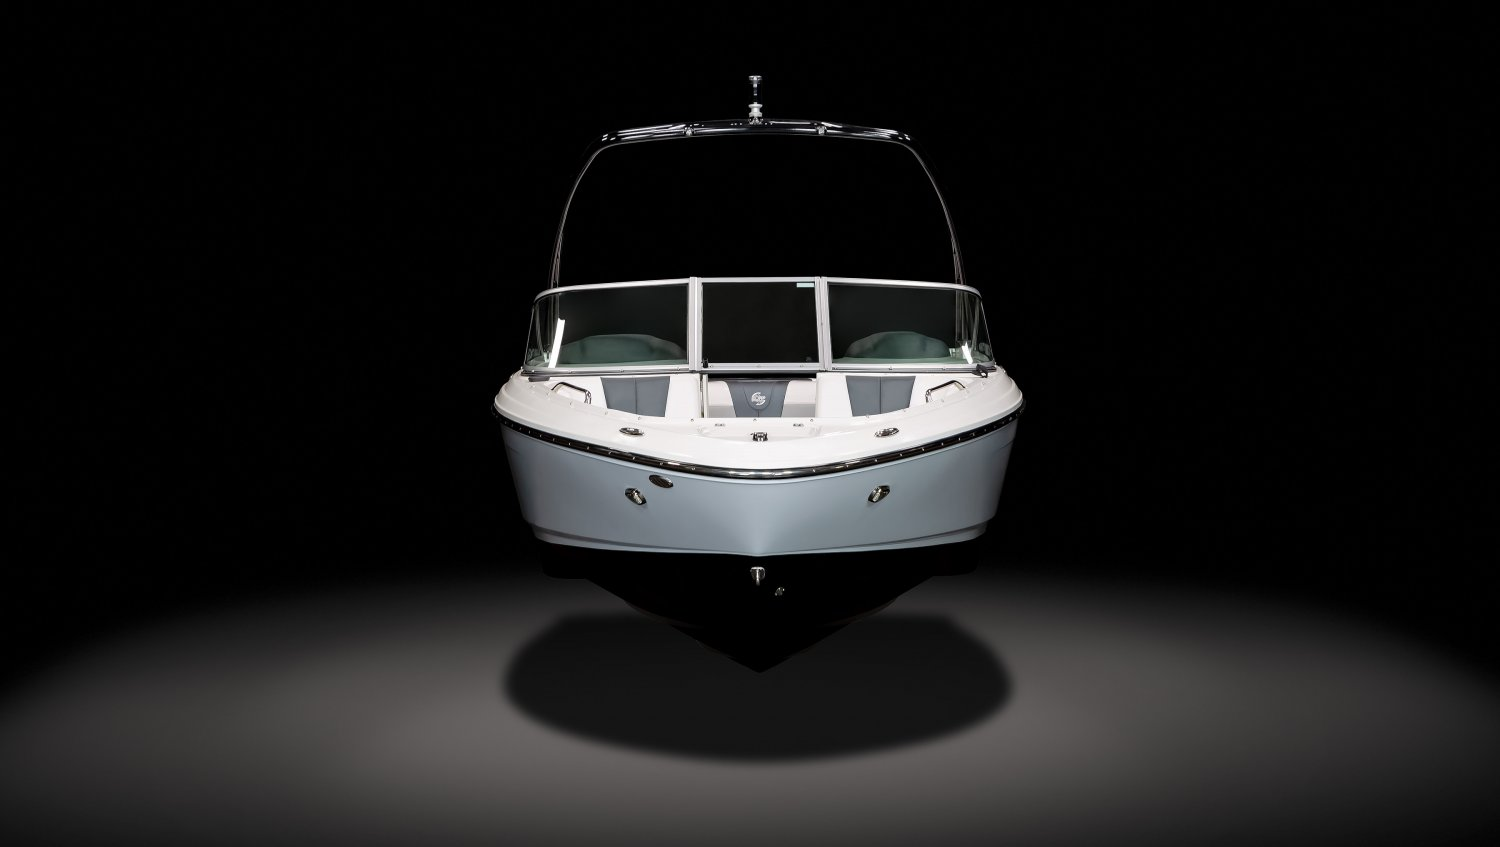 Image of a Solid Black Hull 2022 21